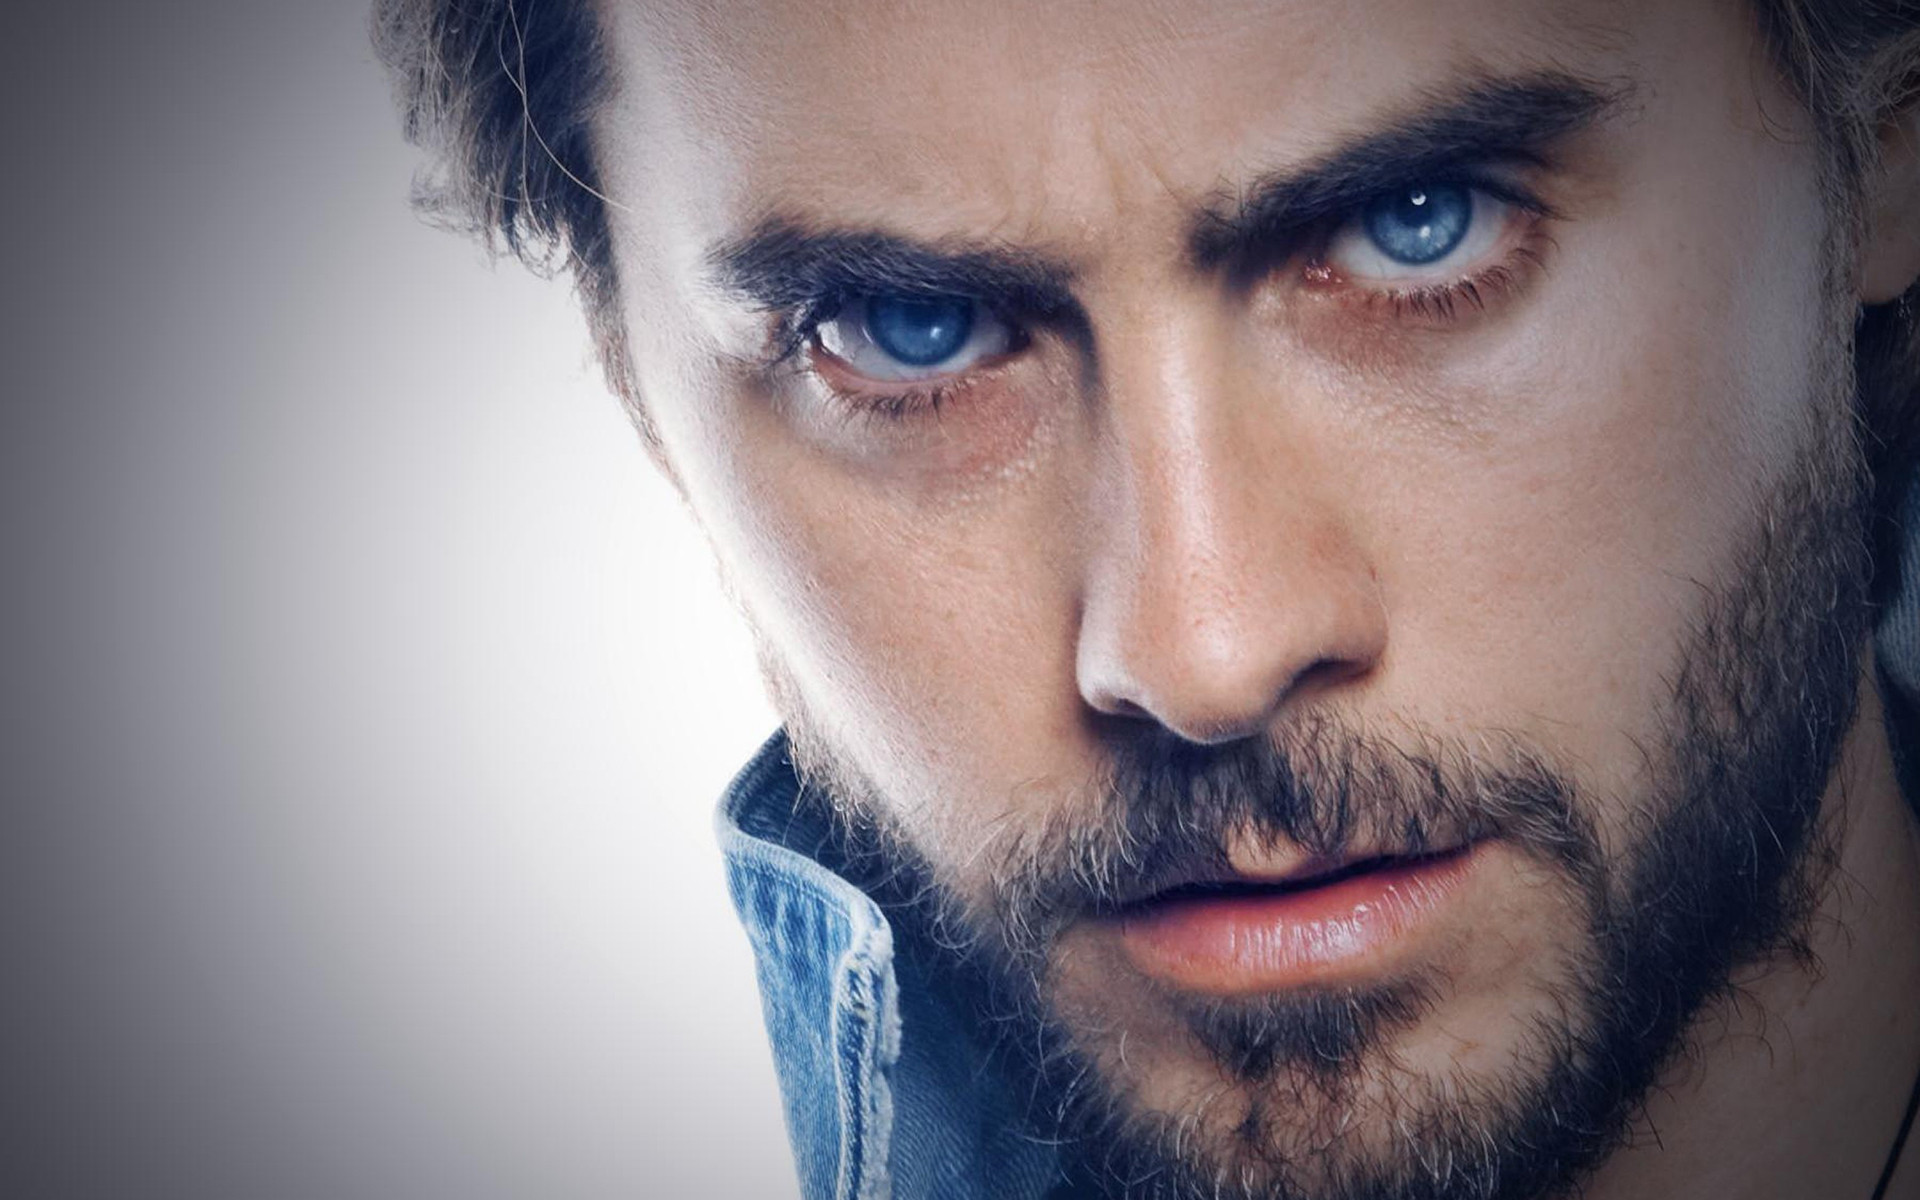 Male Actor Jared Leto